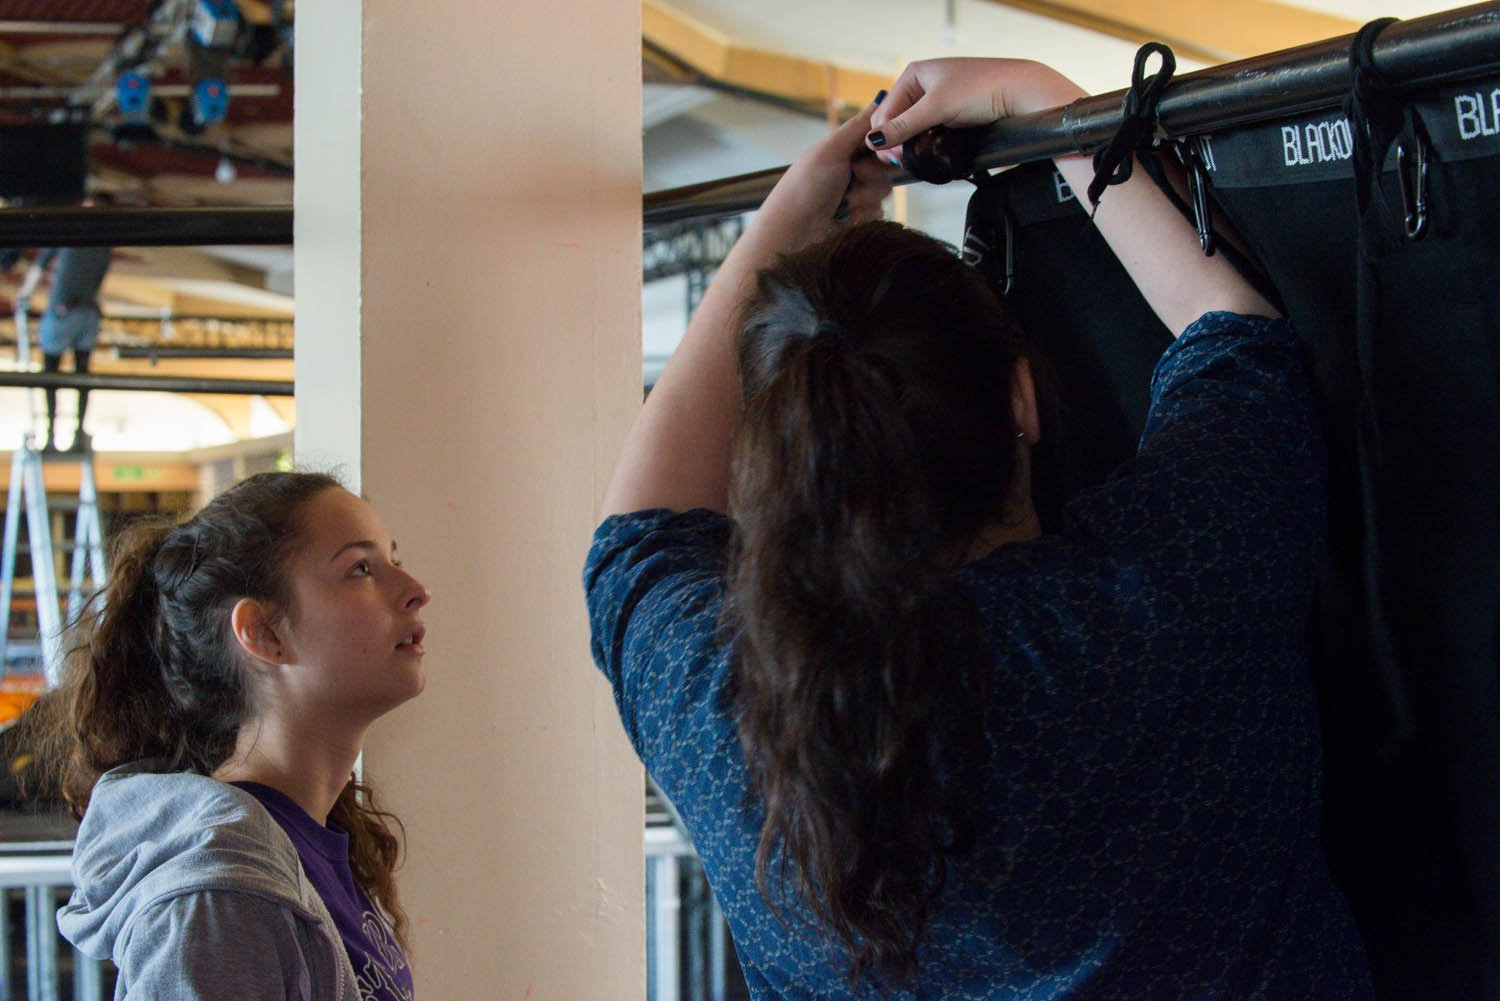 https://t.co/IPtV5LYXdP 'Rigging and drapes are the unsung heroes in the industry' Read our full blog on @NSDFest https://t.co/m0vCUk2Y8a